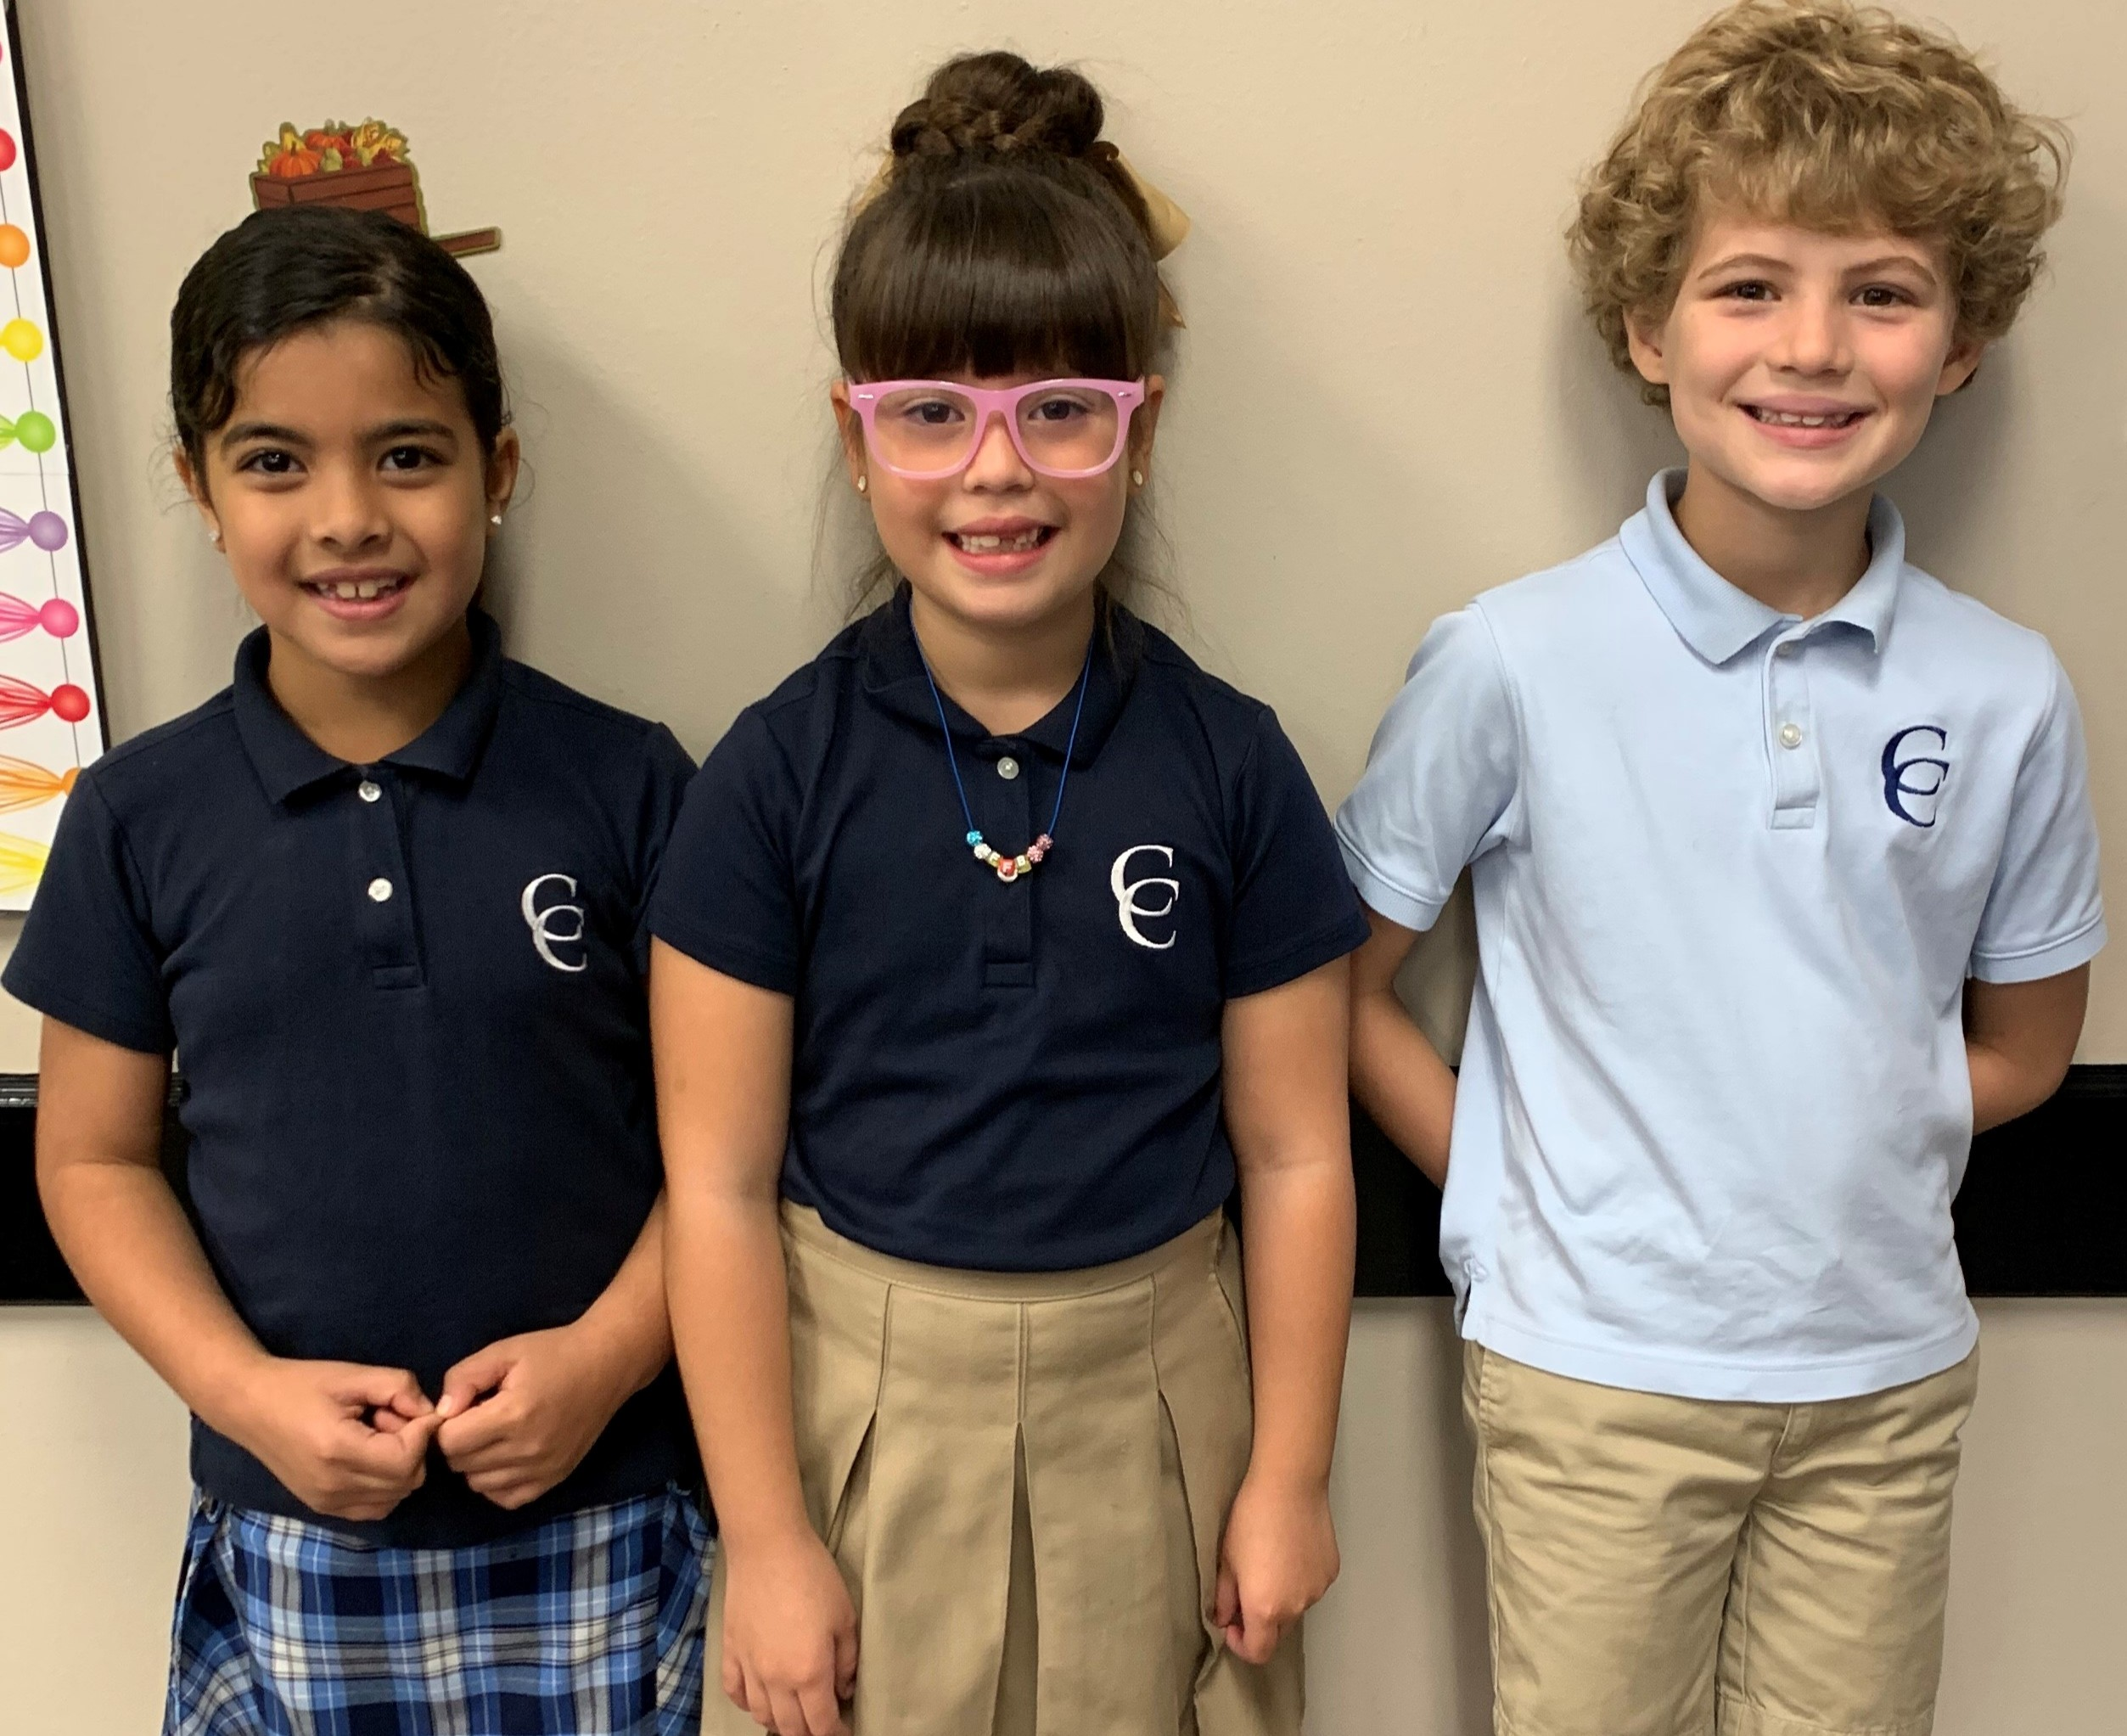 Elementary ACSI Spelling Bee District Winners